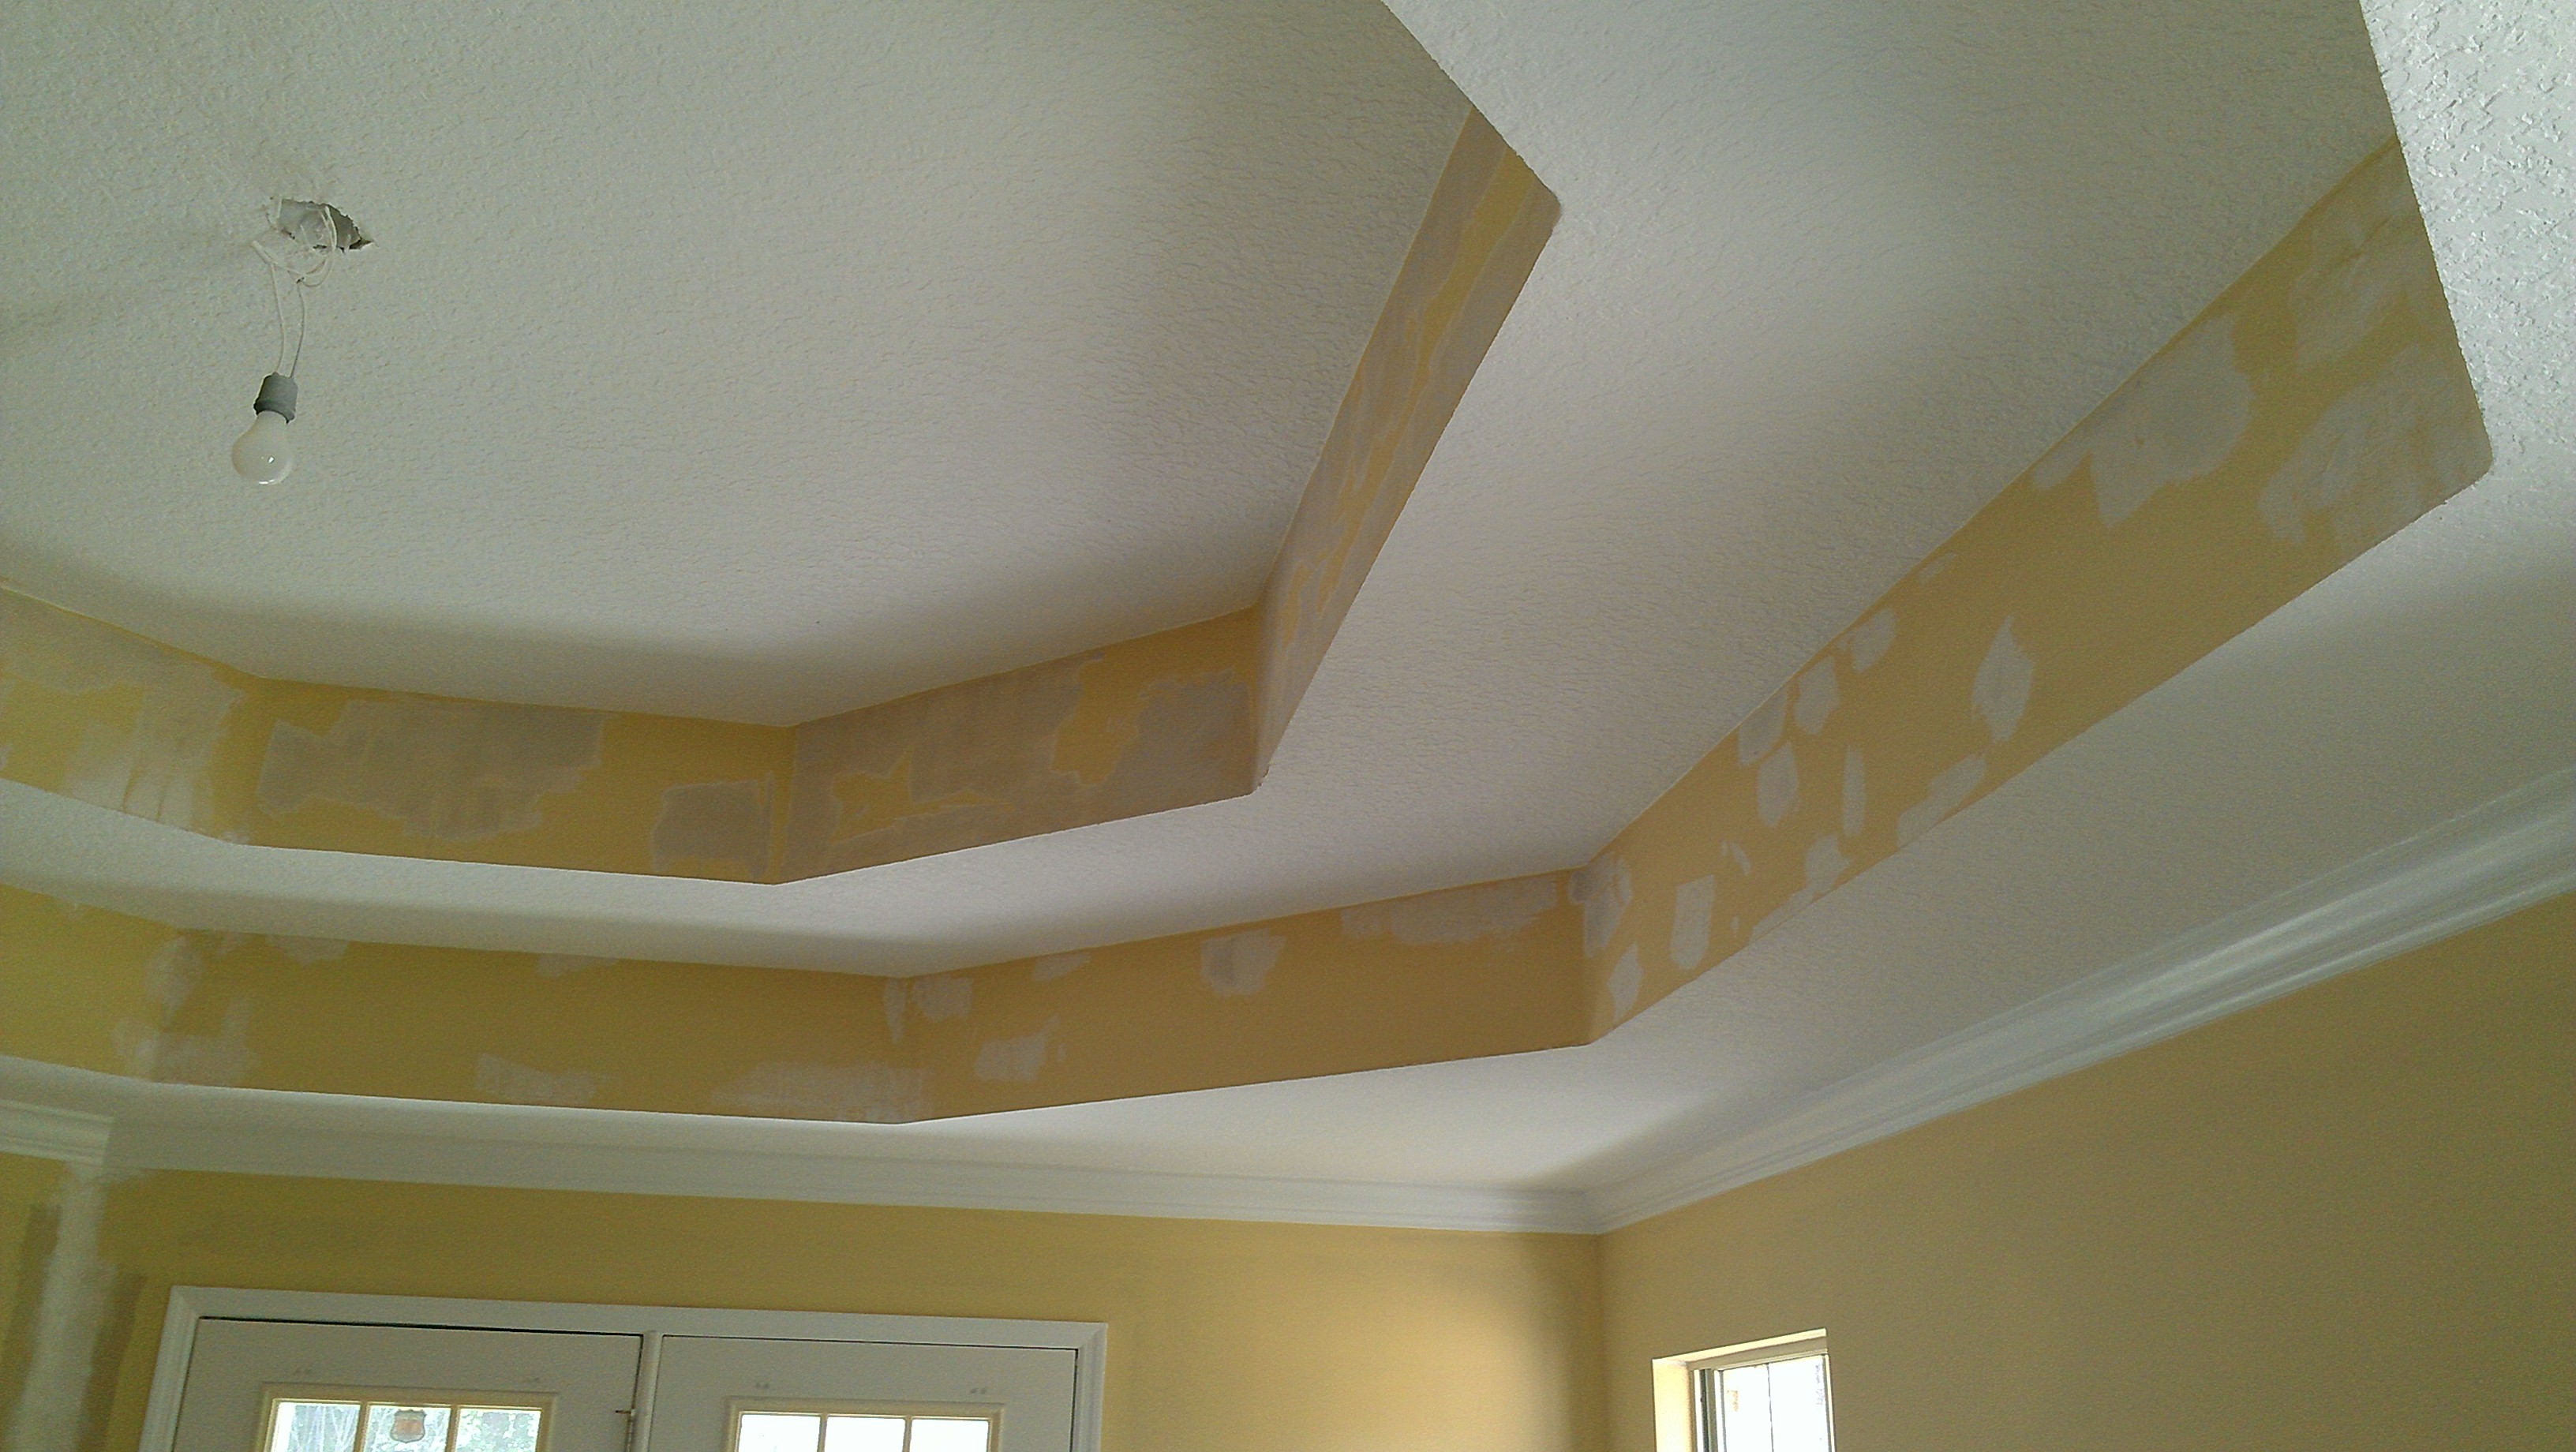 Specialised ceiling job by ceiling contractor in Jacksonville